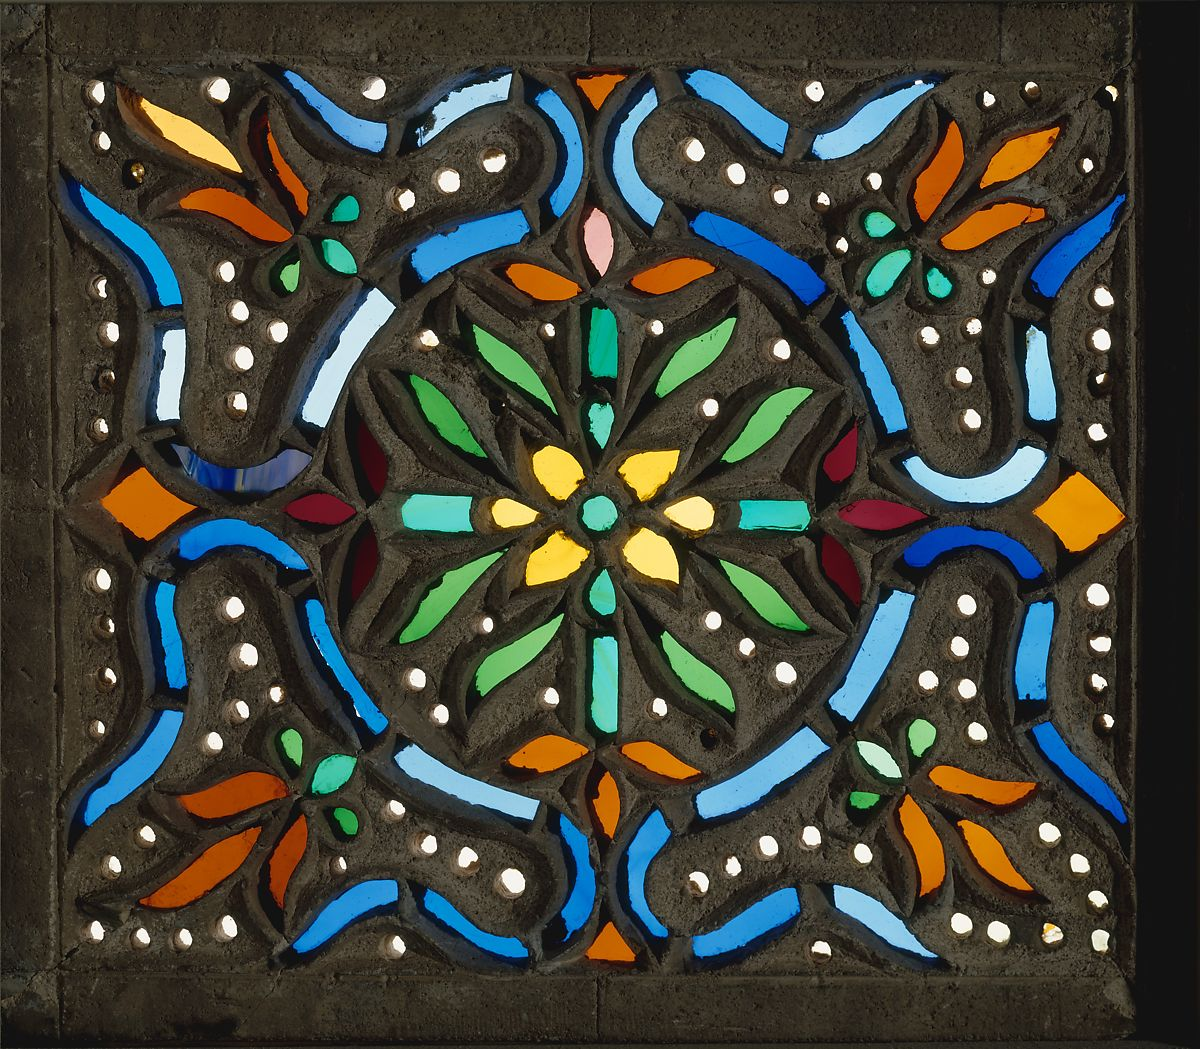 decorative windows for houses.htm the damascus room essay the metropolitan museum of art  the damascus room essay the